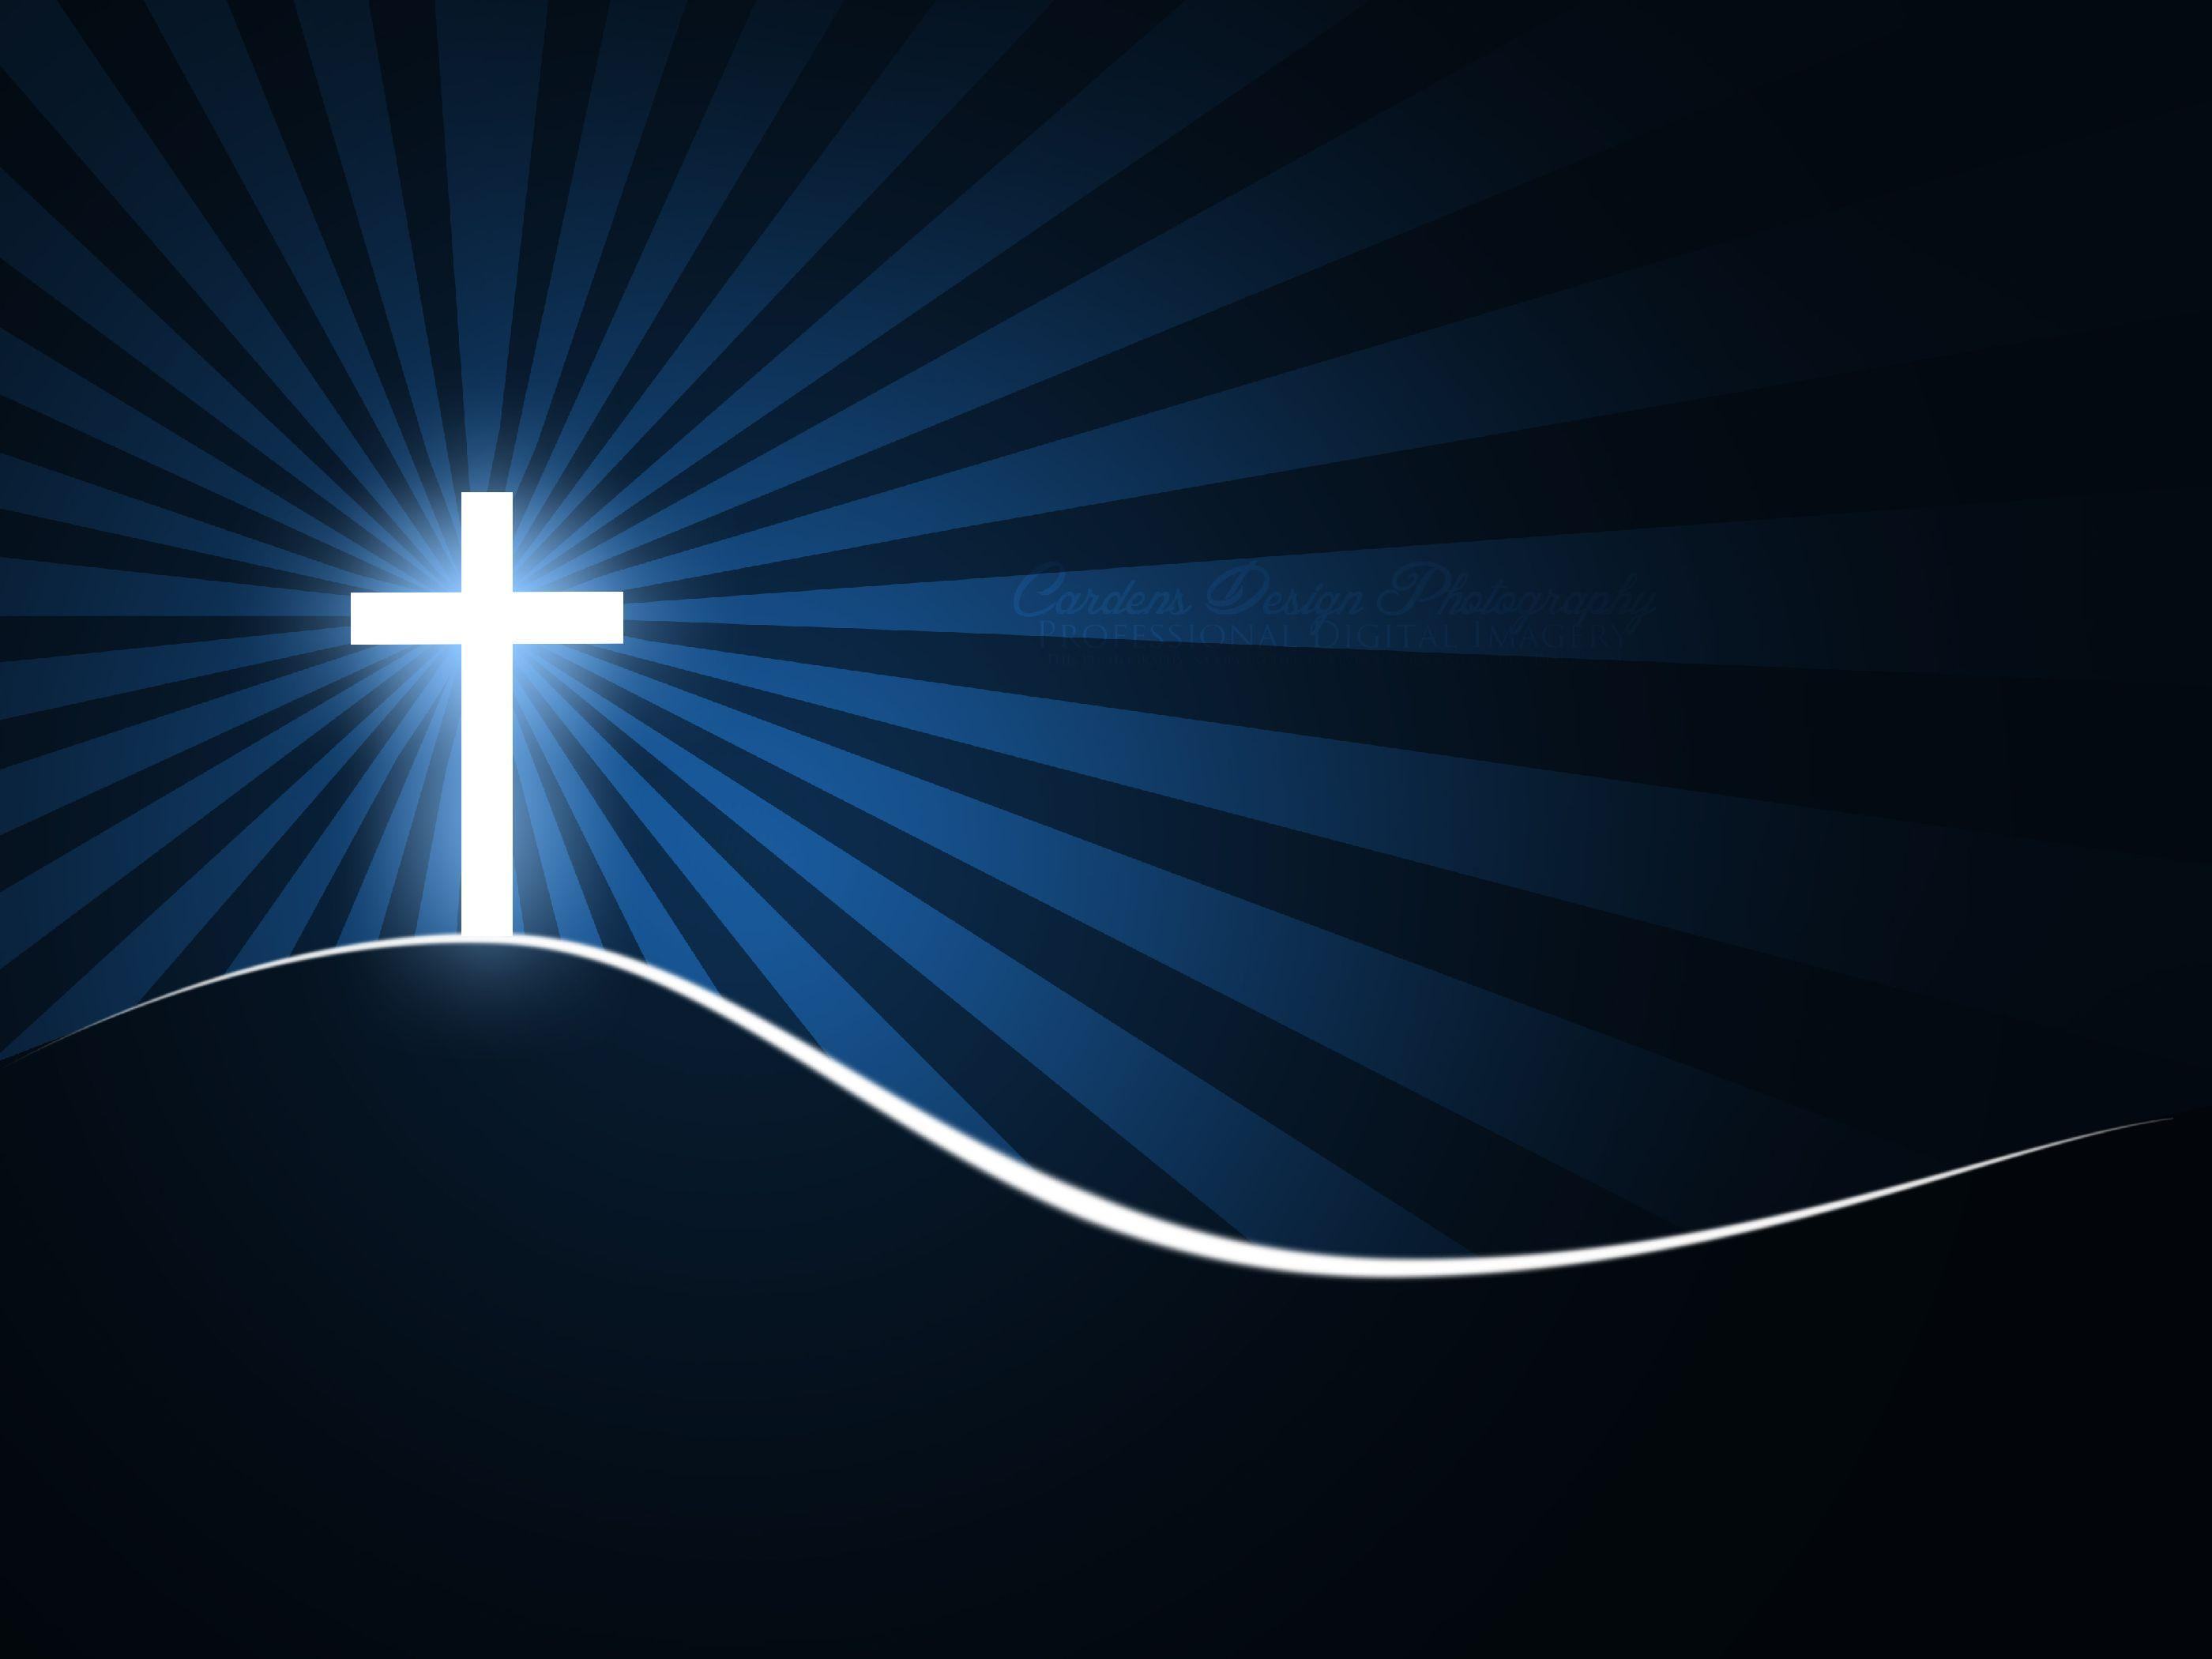 christian cross wallpapers 3d - photo #10